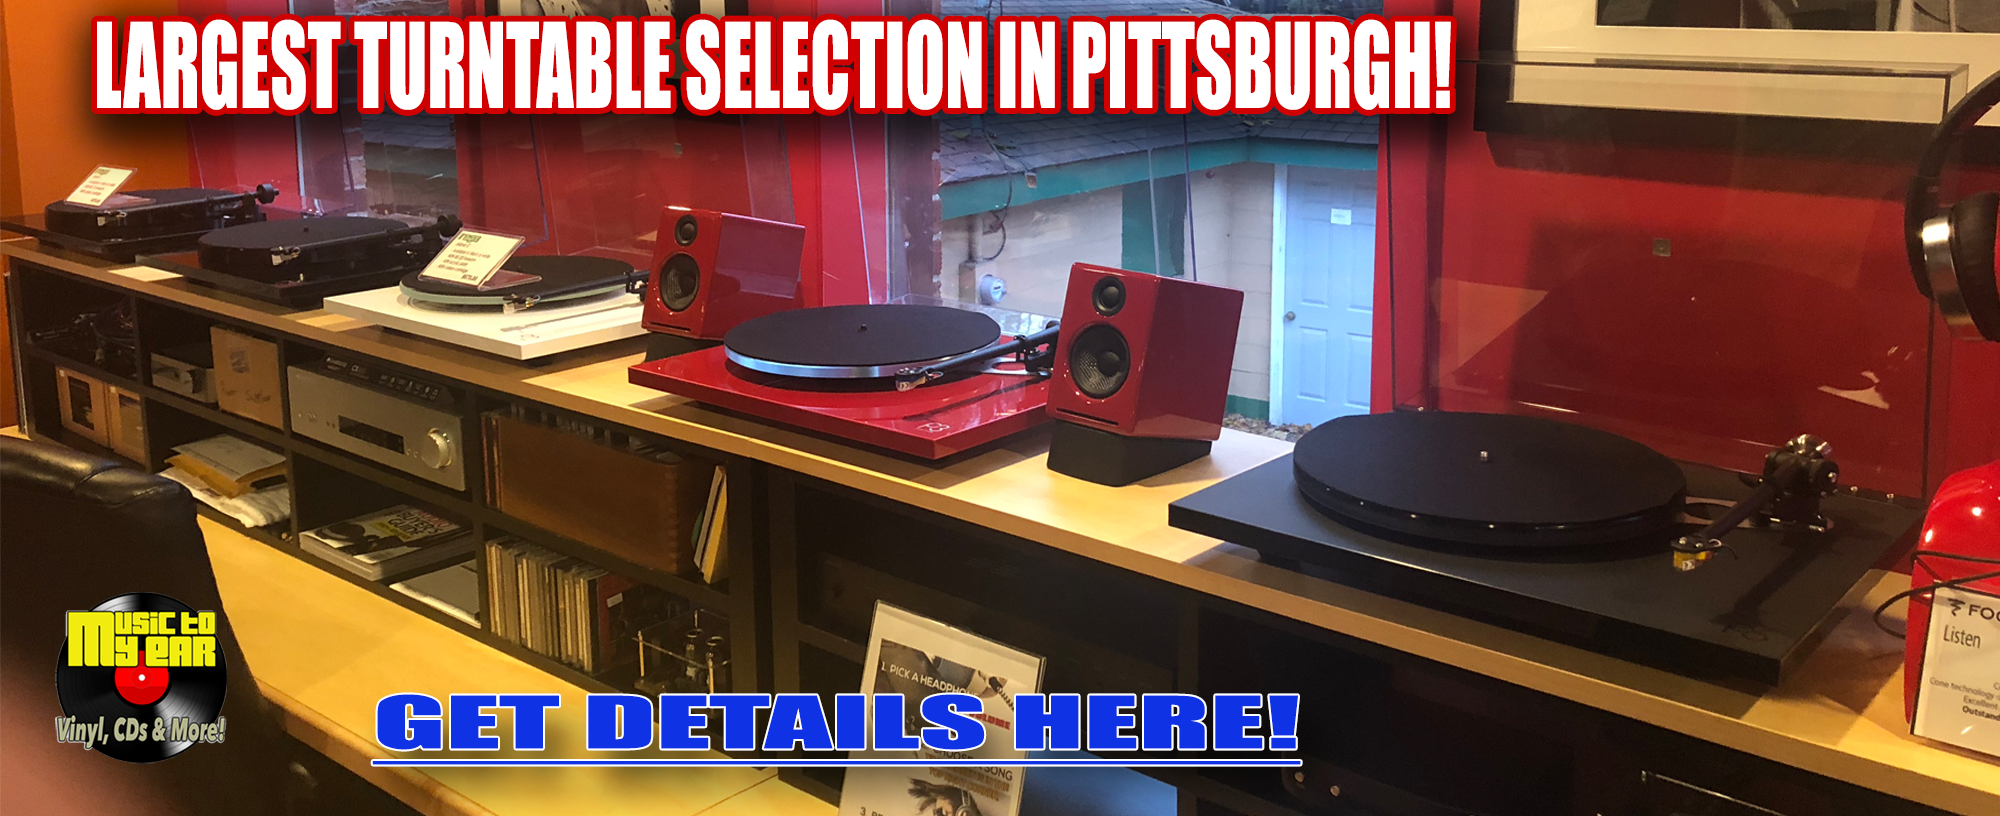 Largest Turntable Selection In Pittsburgh